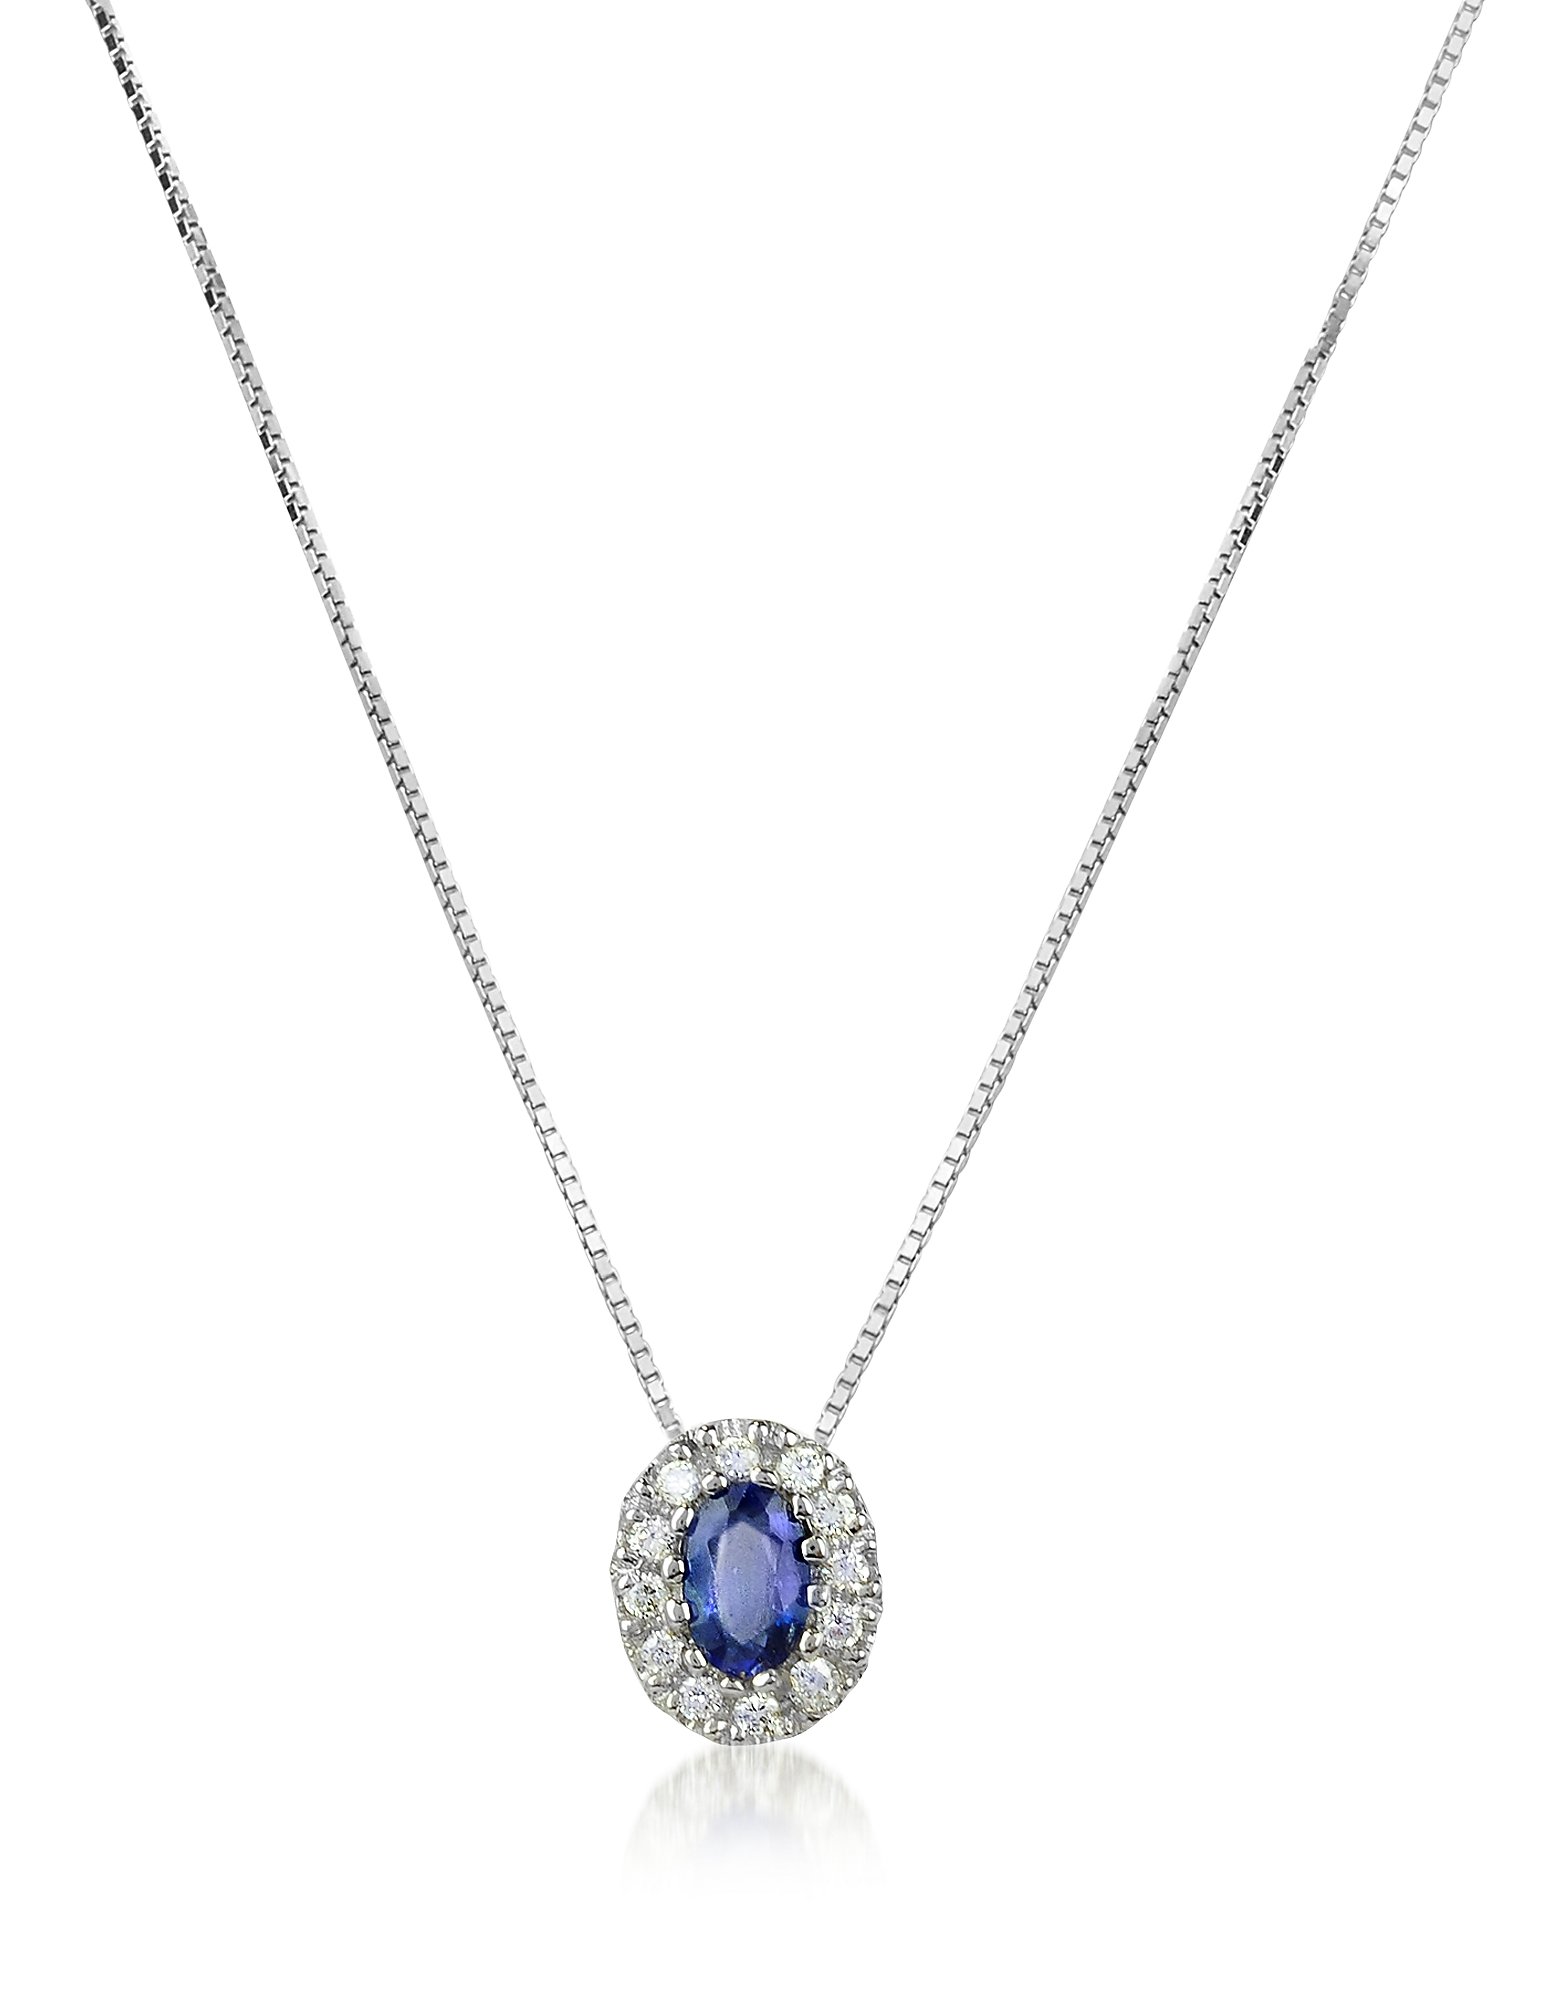 Incanto Royale Necklaces, Diamond and Sapphire Round 18K Gold Pendant Necklace